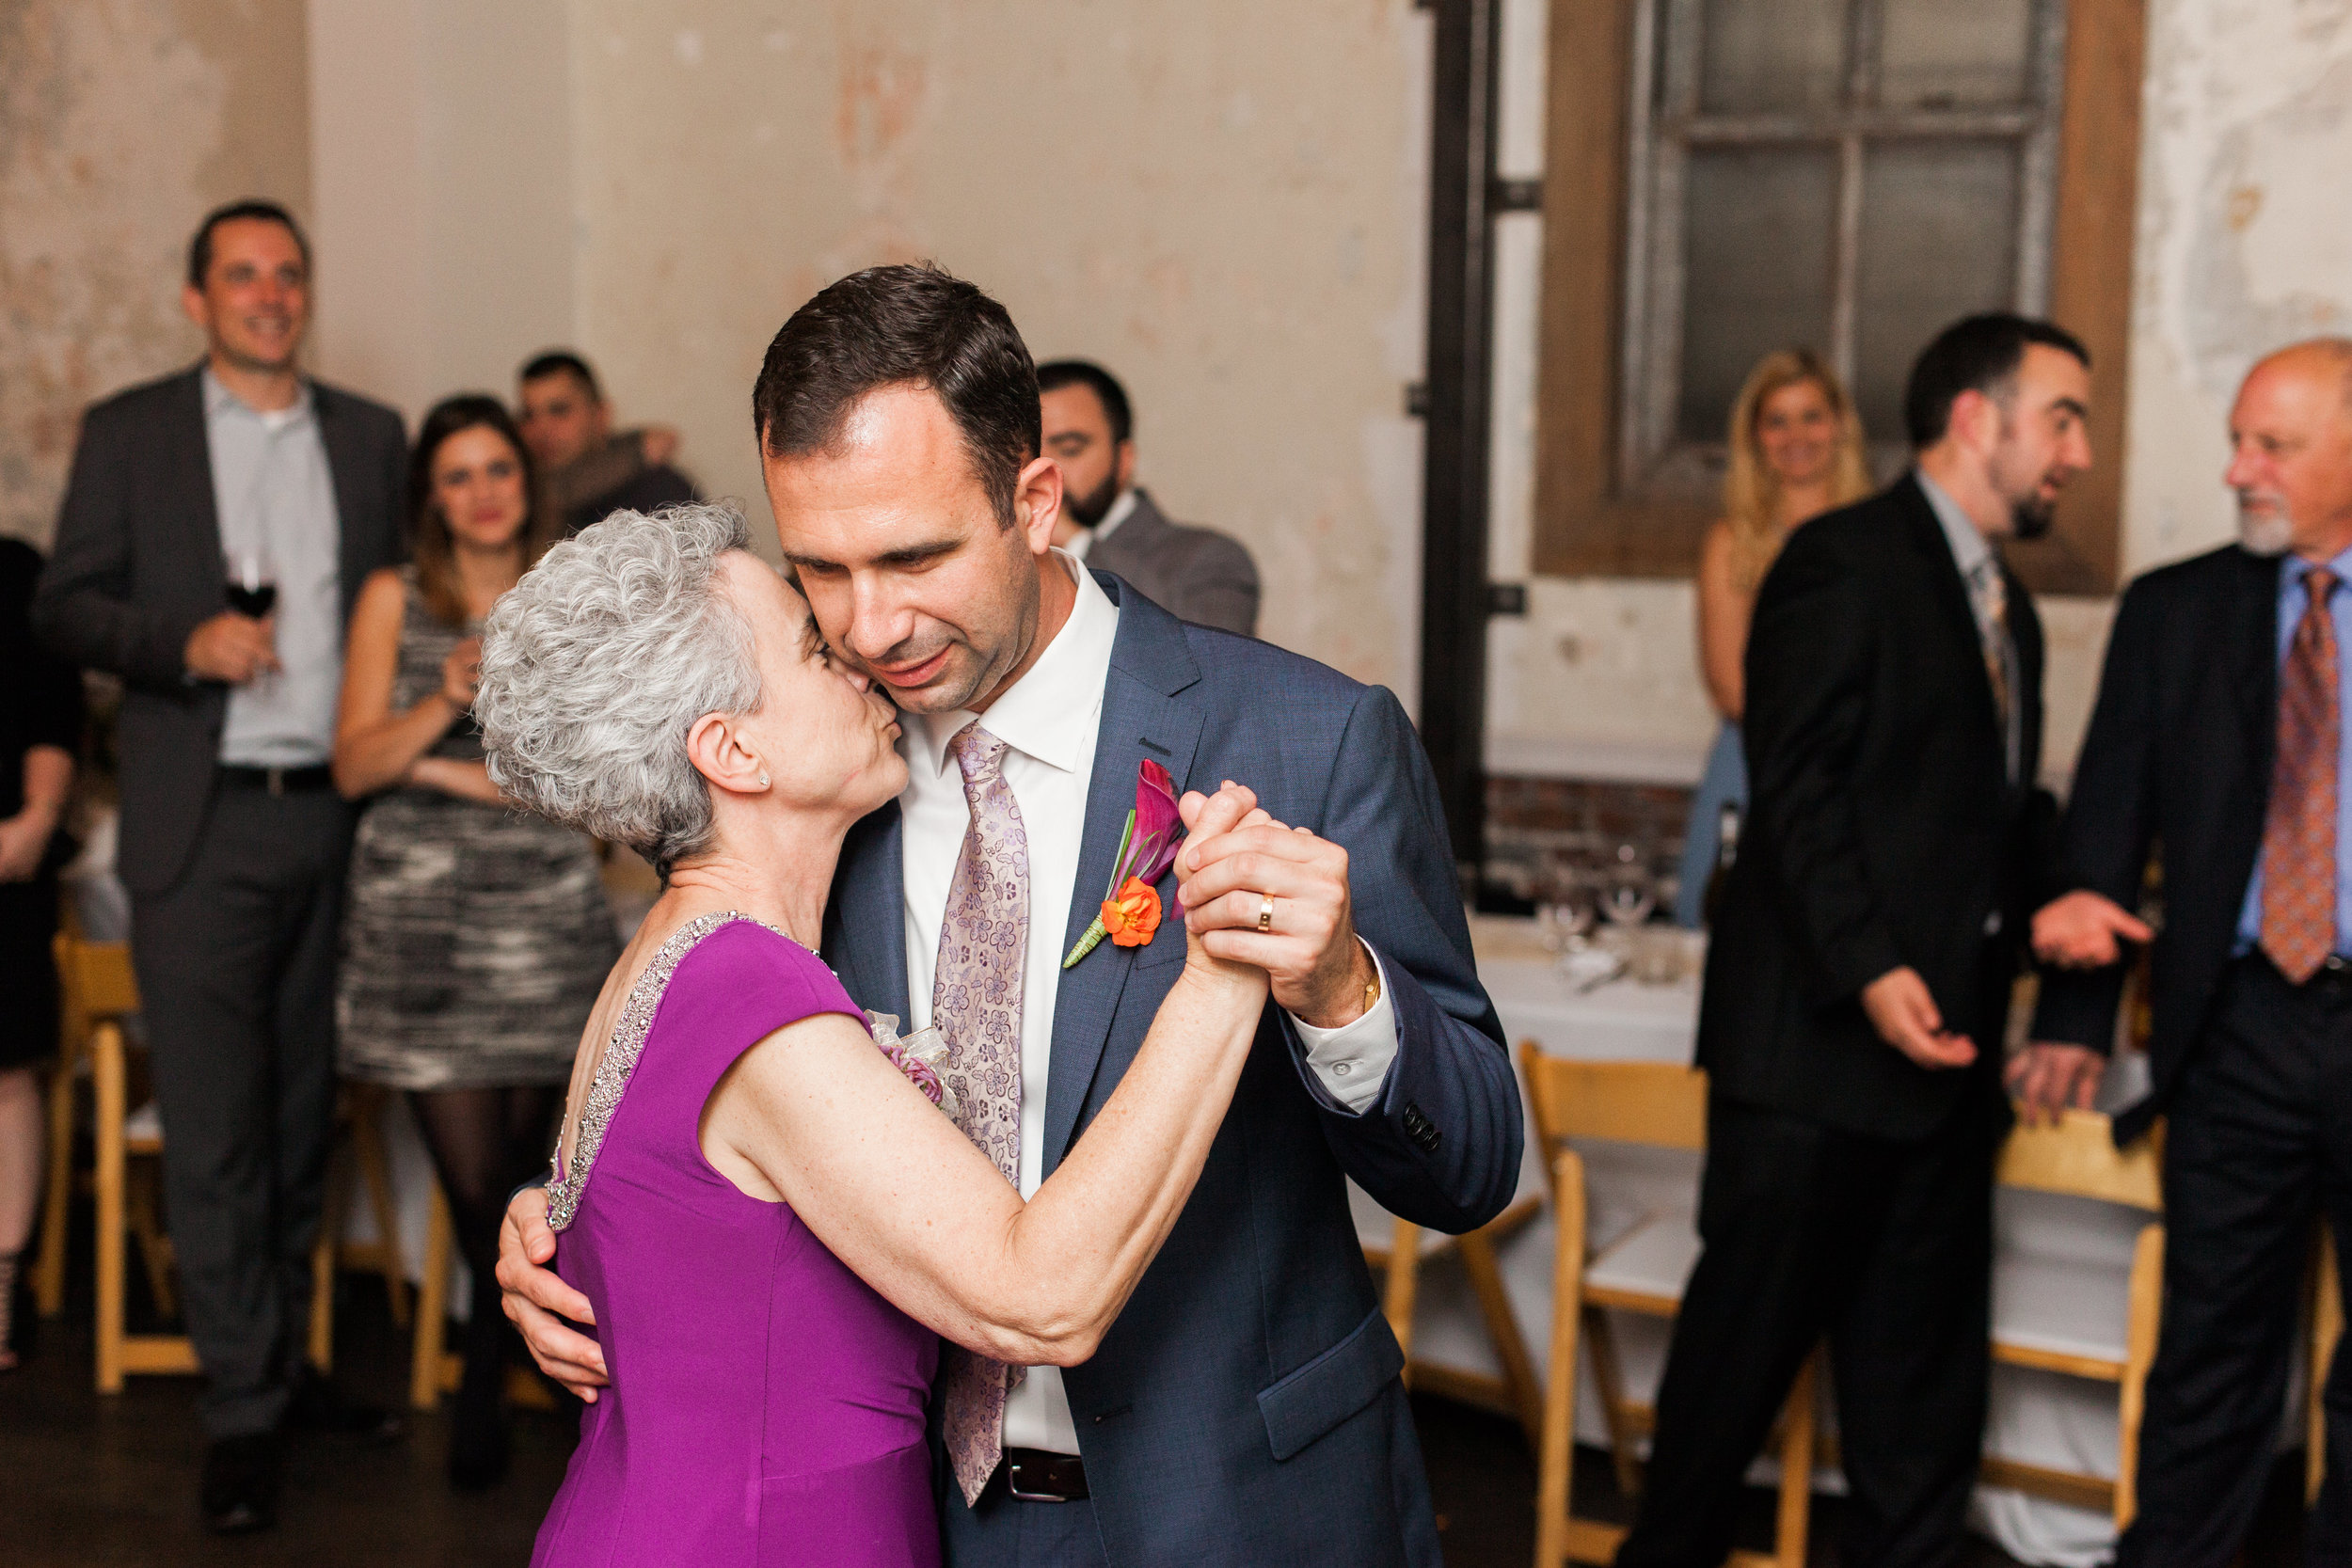 style-inspired-wedding-at-firehouse-8-in-san-francisco-90.jpg